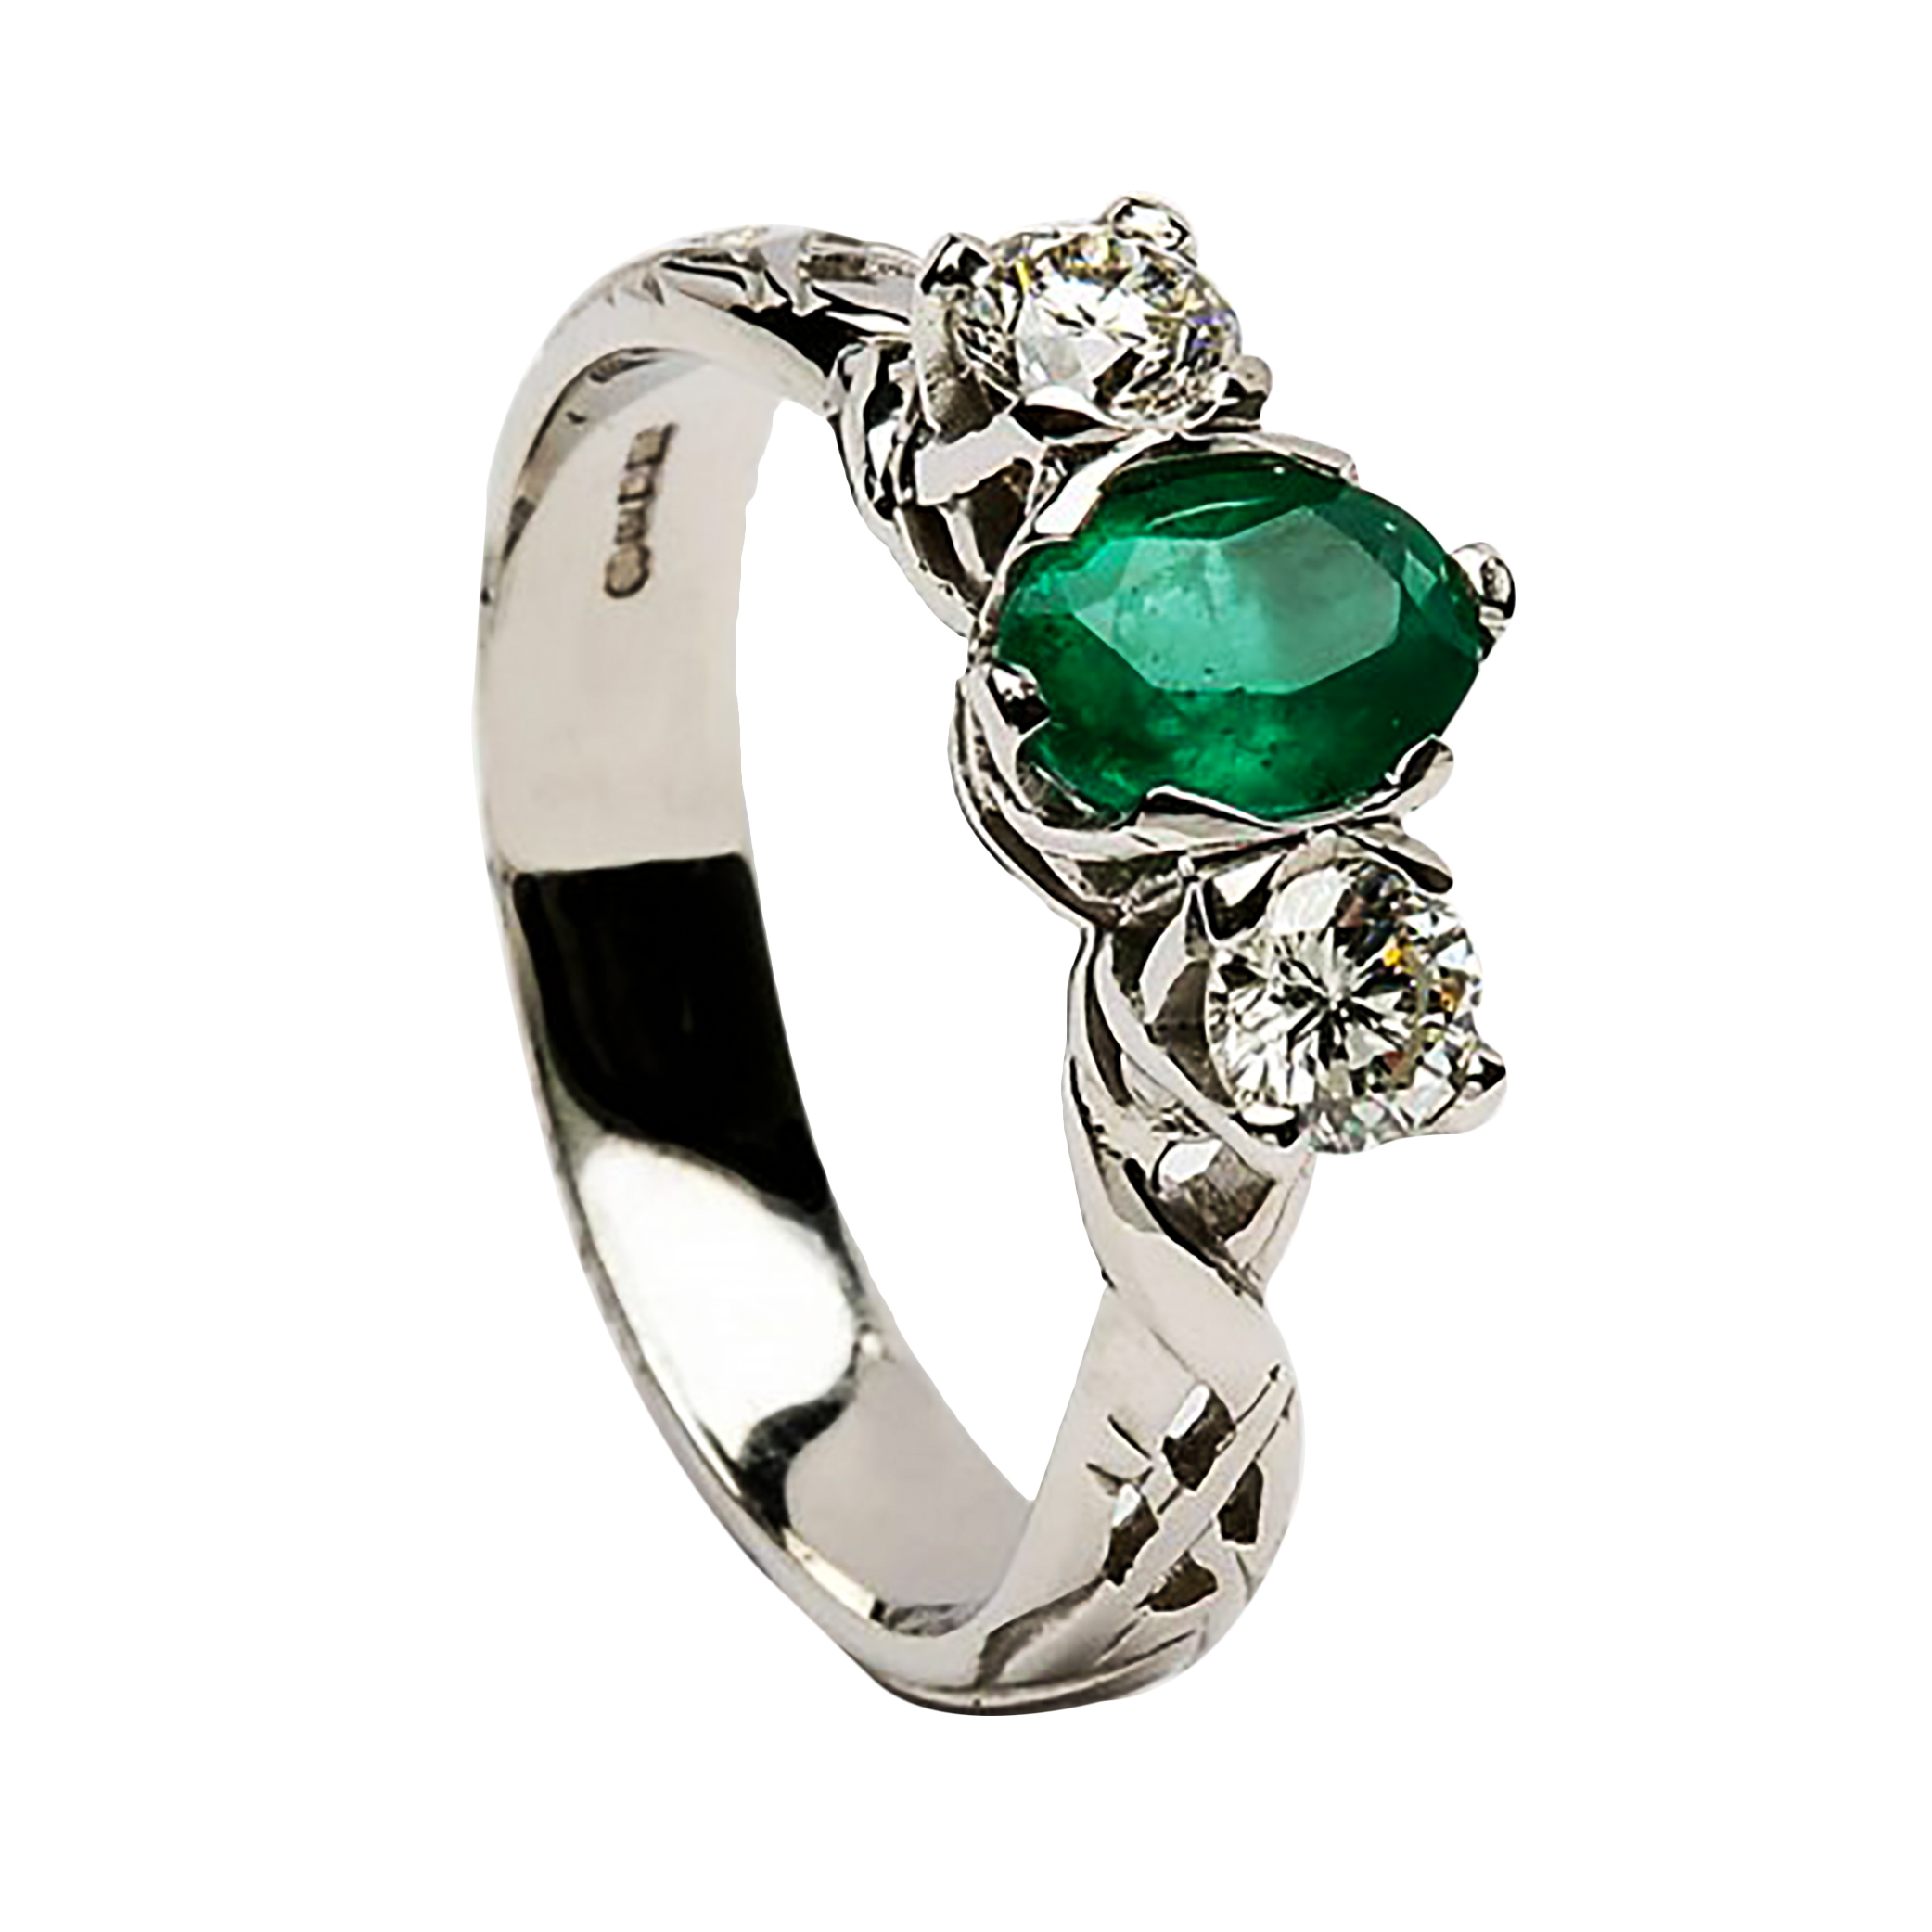 specific diamond emerald london exchange emeral ring bespoke rings